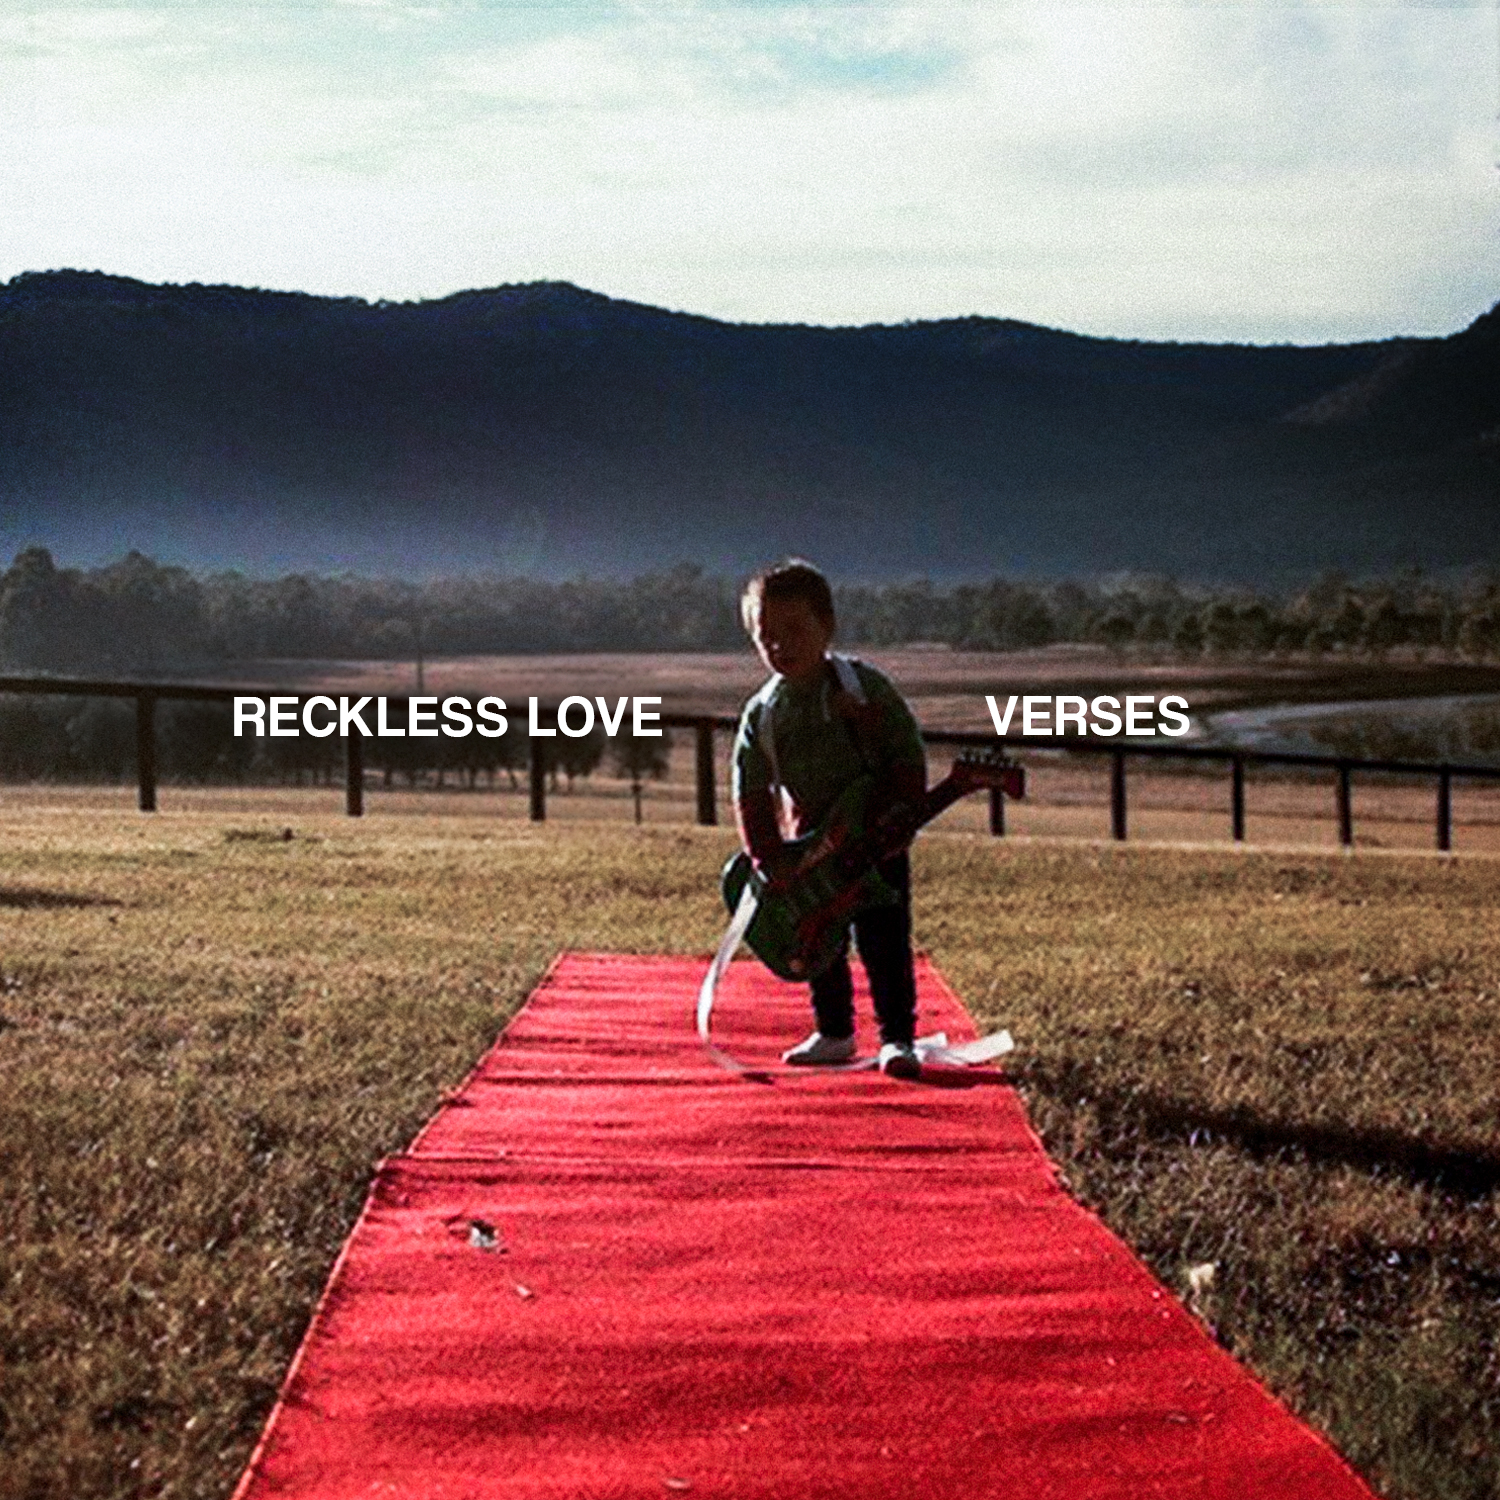 24 Hour Premiere: VERSES - Reckless Love